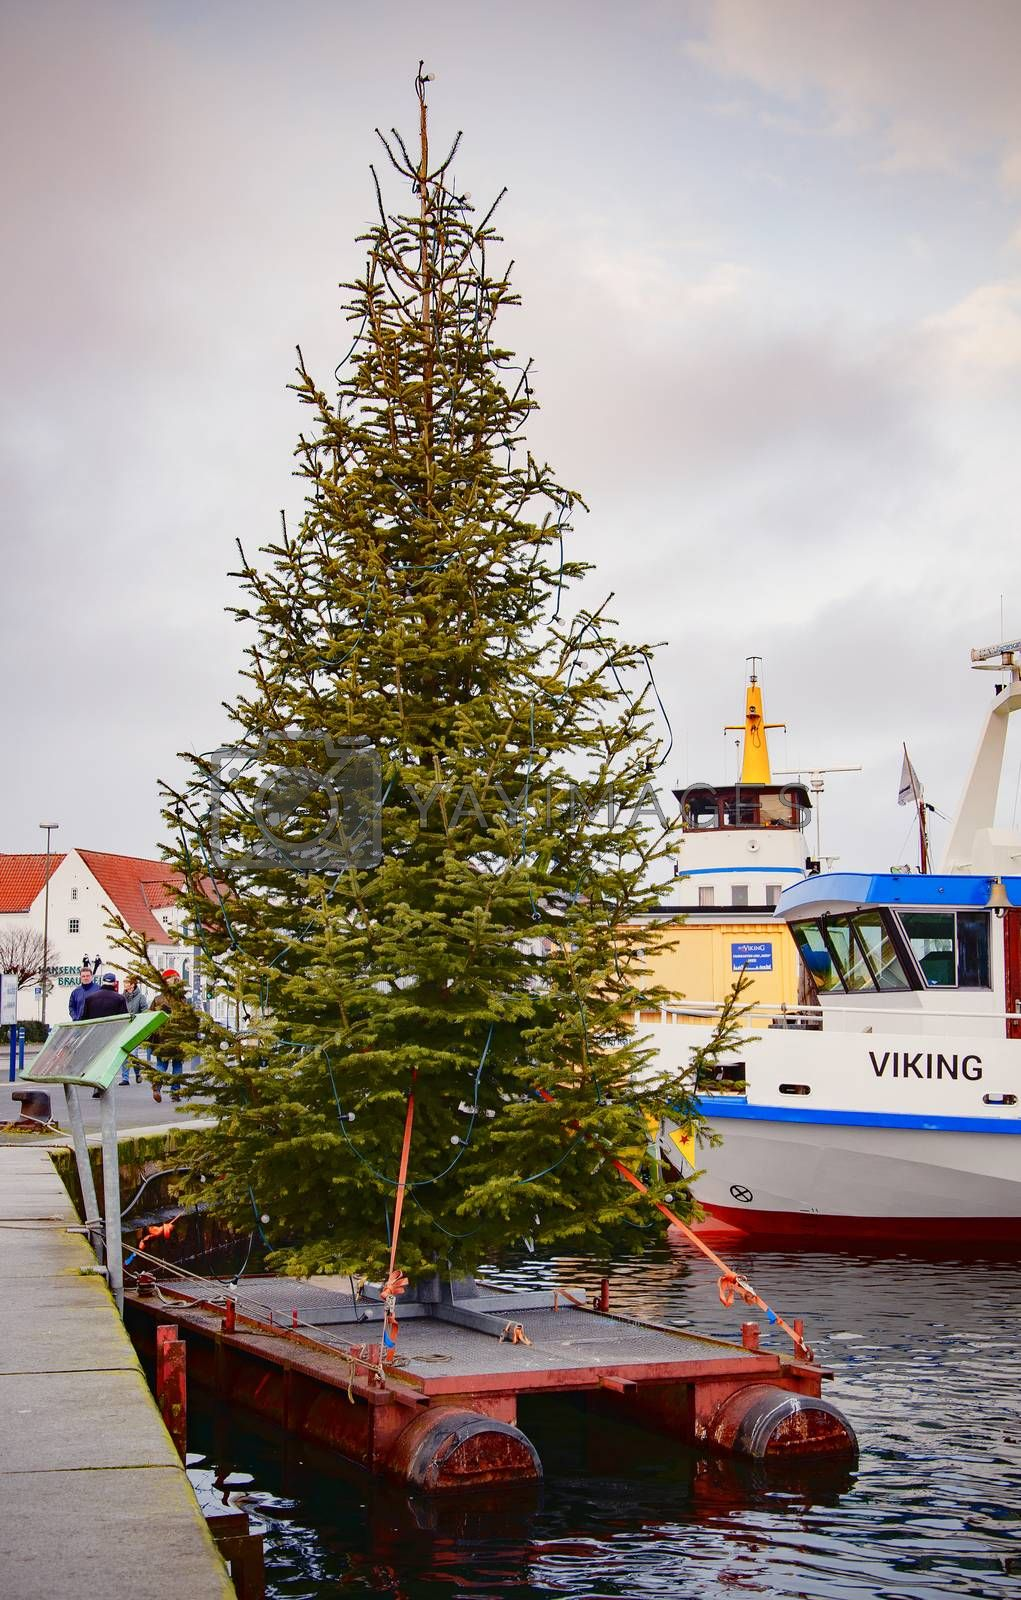 FLENSBURG, GERMANY. JANUARY 26, 2020. Yachts at the pier Christmas tree on the embankment